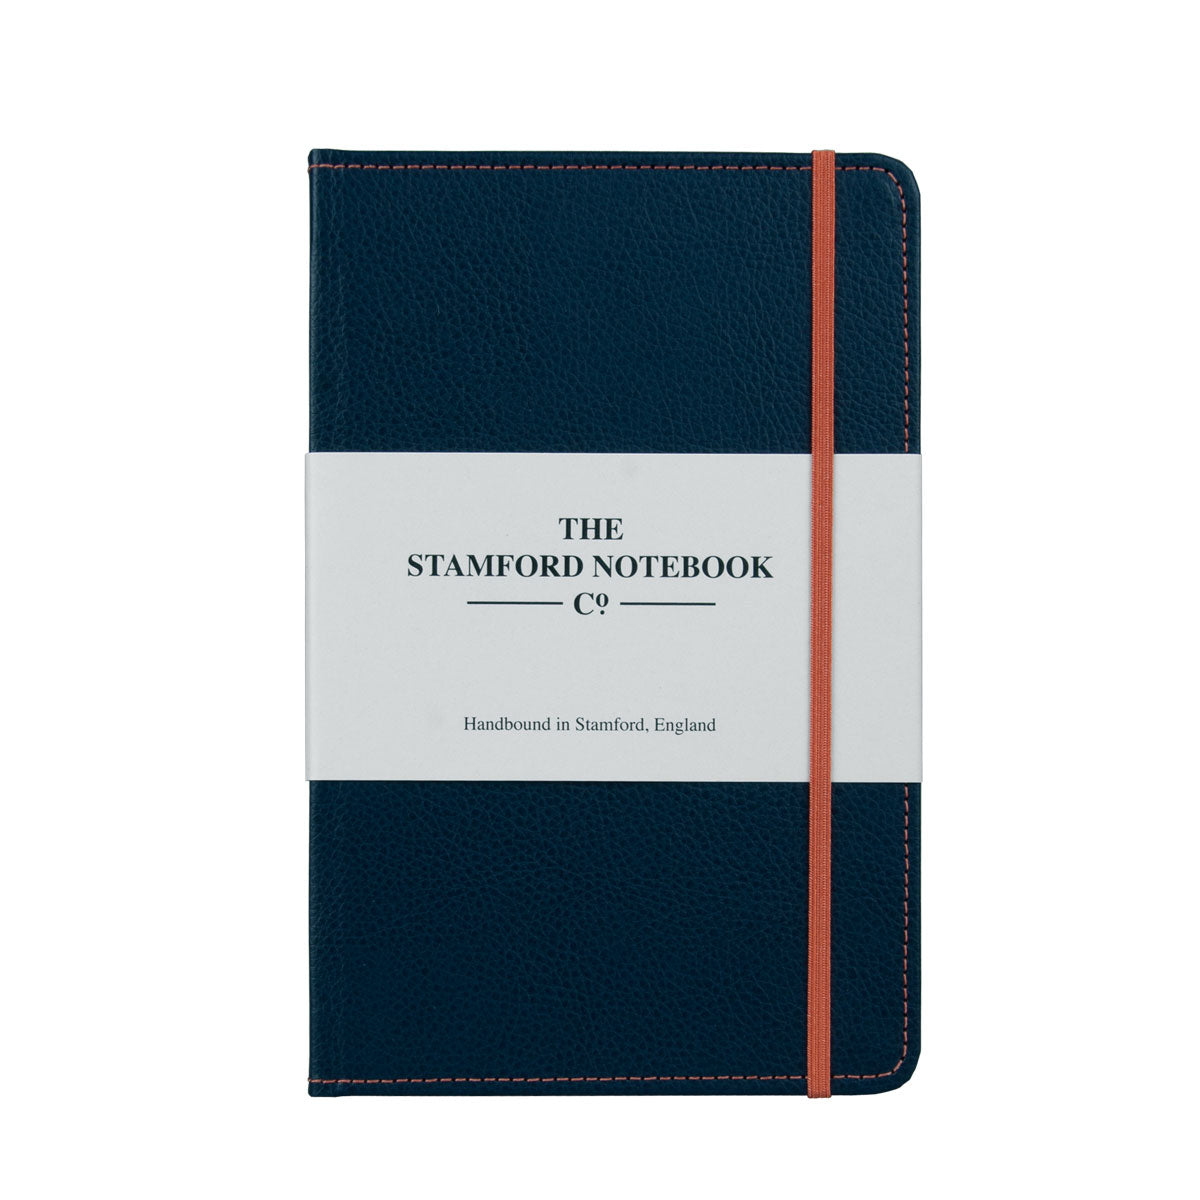 Marine Blue leather notebook with orange stitching